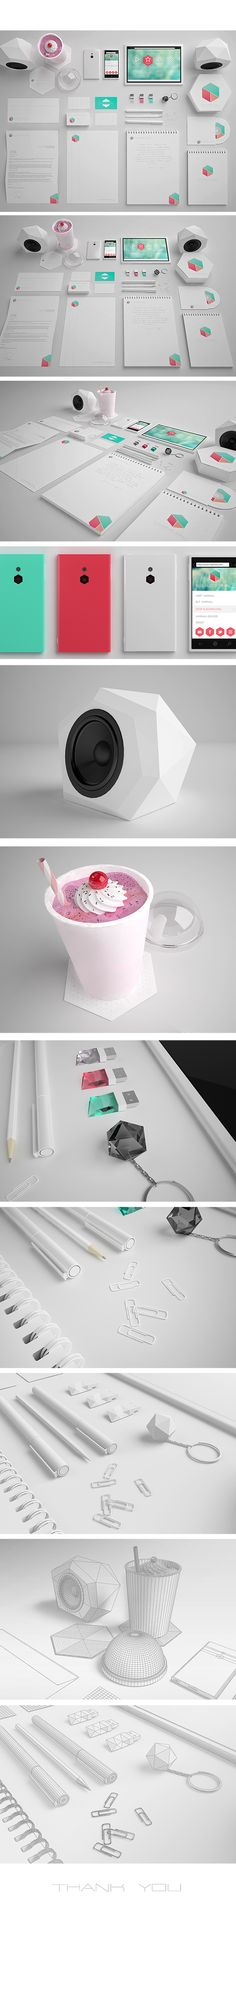 Marmal Brand Identity by Monika Kusheva, via Behance #identity #packaging #branding #marketing PD